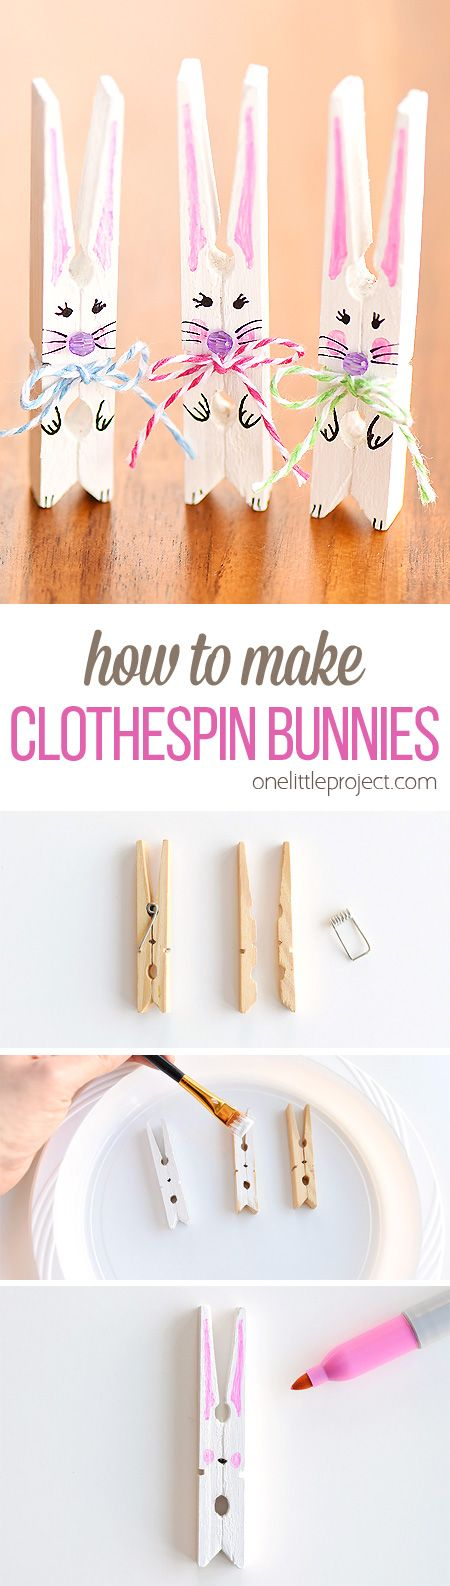 DIY Clothespin Bunnies.